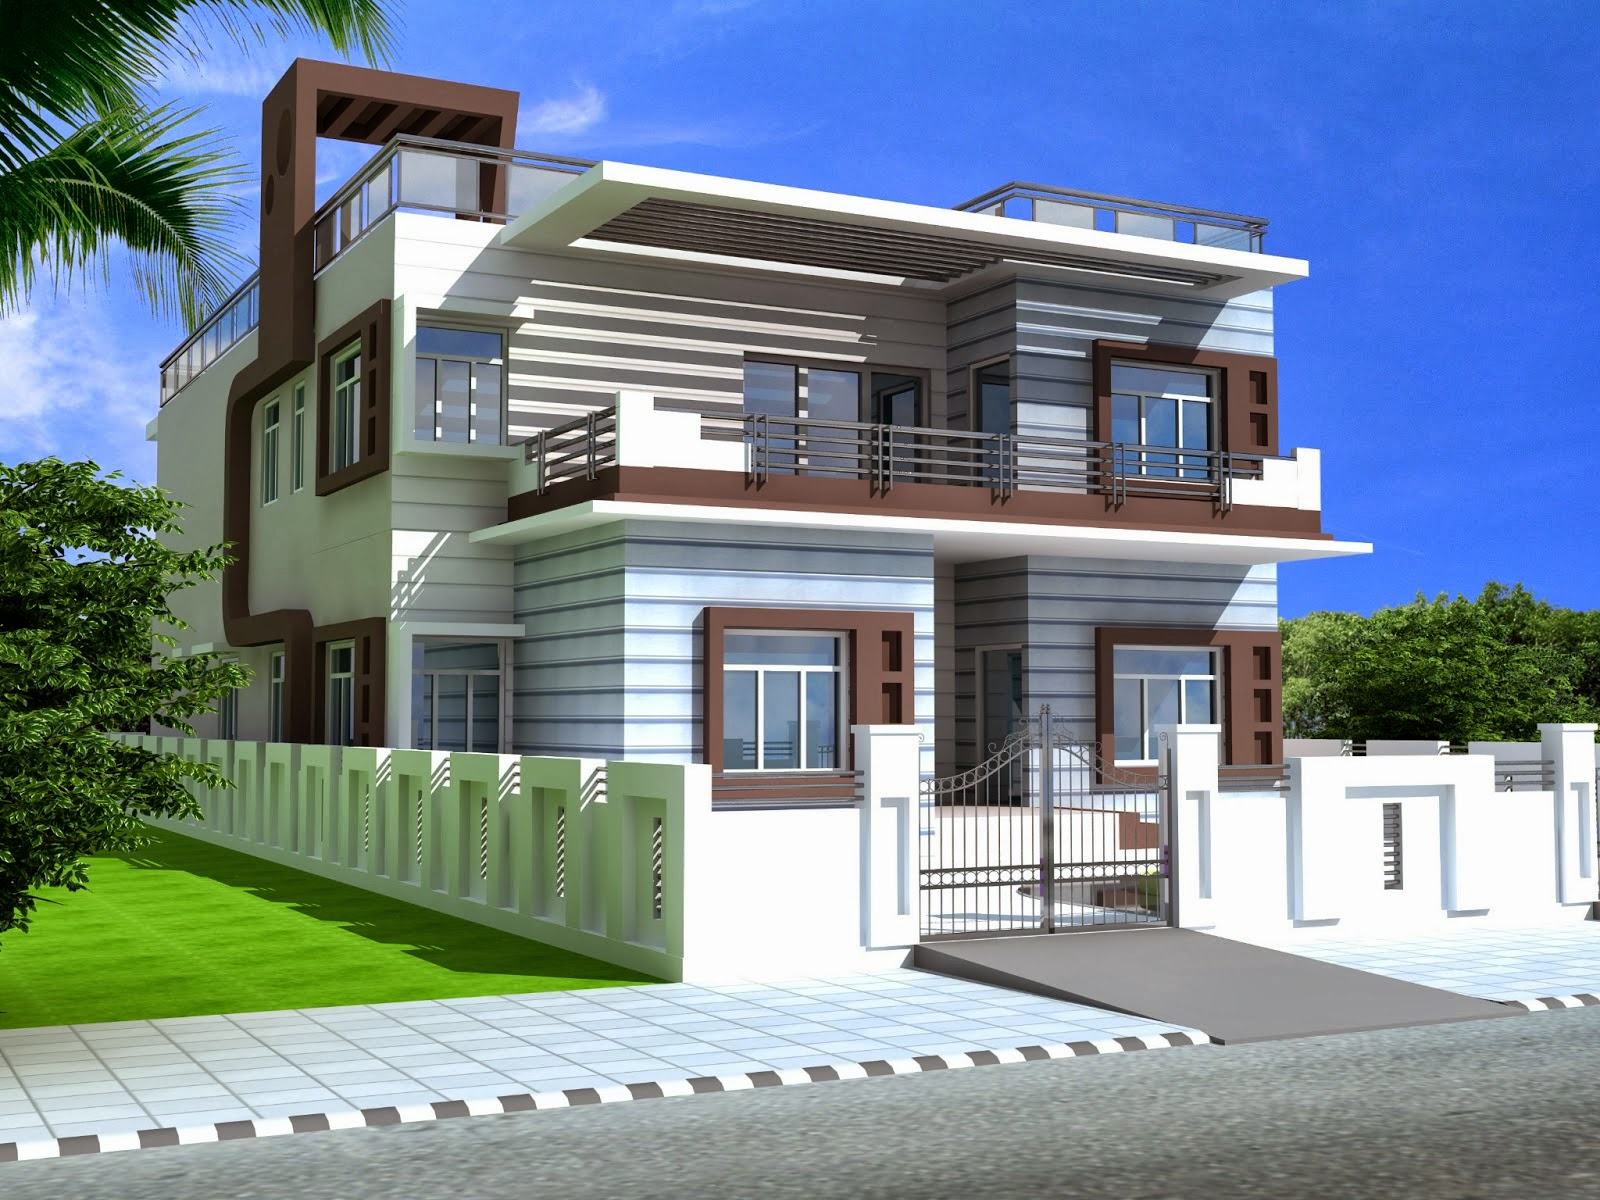 Foundation dezin decor duplex homes 3ds max work for House structure design